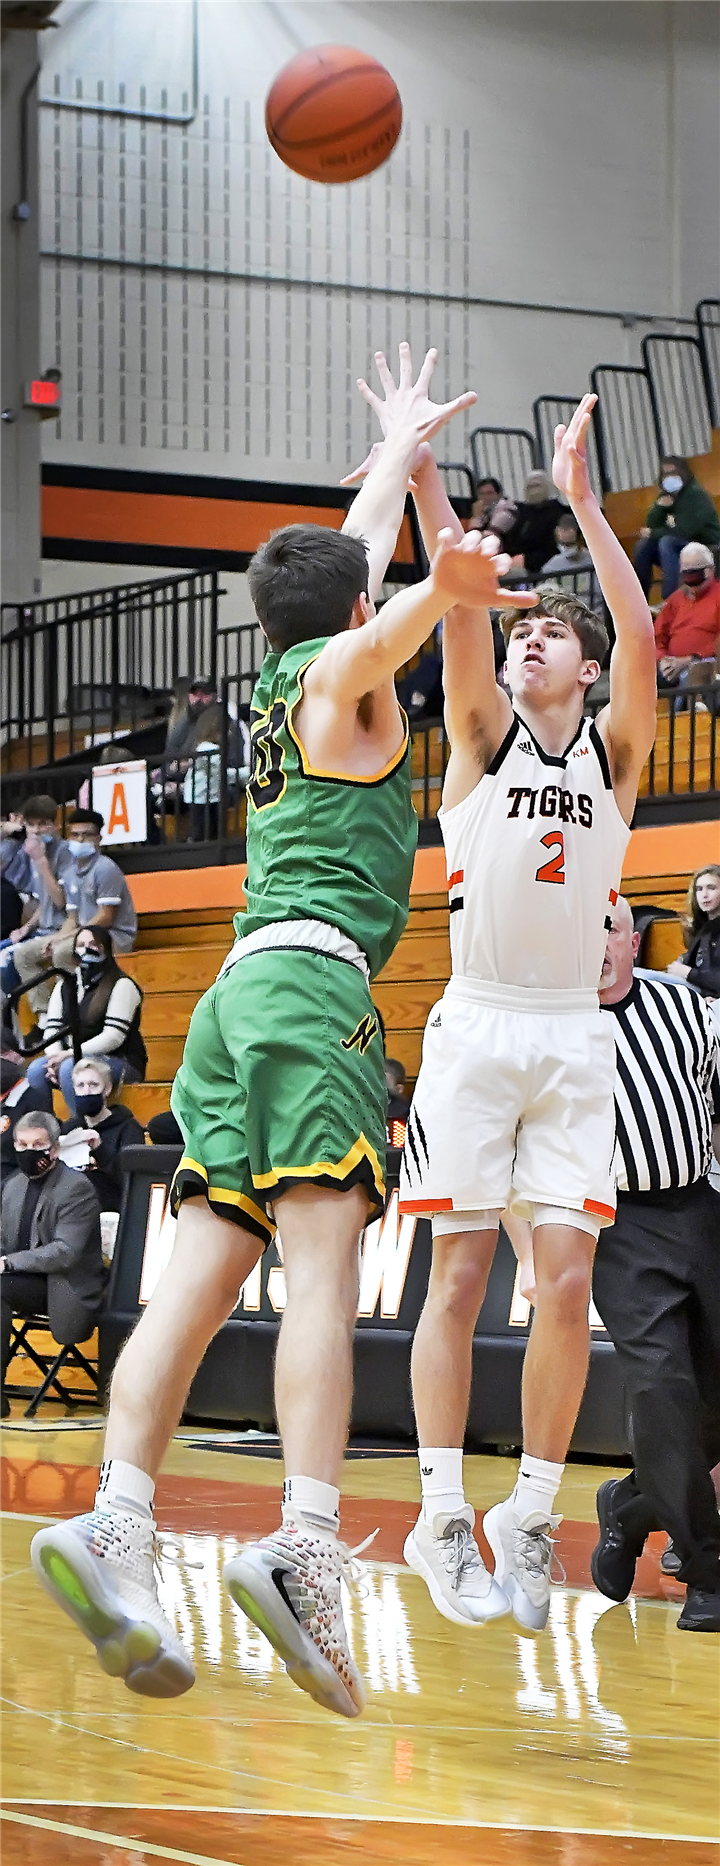 Photo by Gary Nieter/Times-Union Warsaw sophomore Jaxon Gould launches a three-pointer during the first quarter of Friday night's home game against Northridge. Gould notched a double-double with 17 points and 11 rebounds.